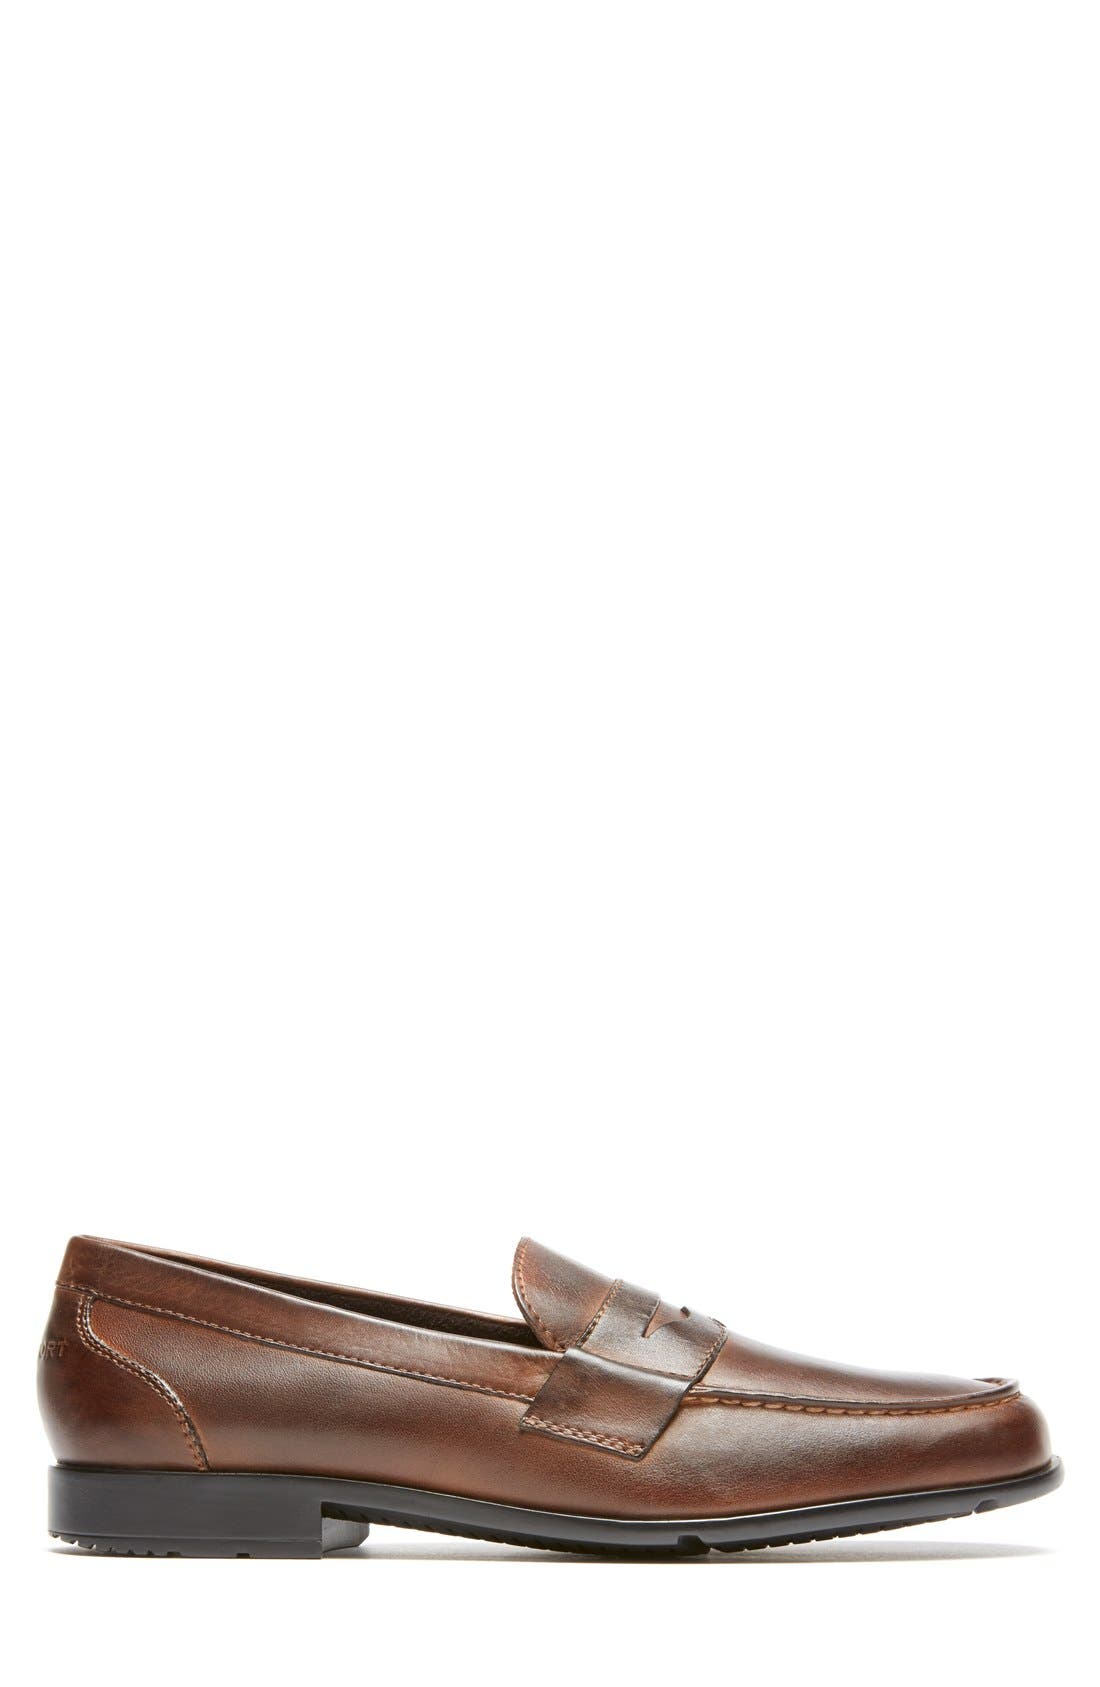 Leather Penny Loafer,                             Alternate thumbnail 3, color,                             Brown